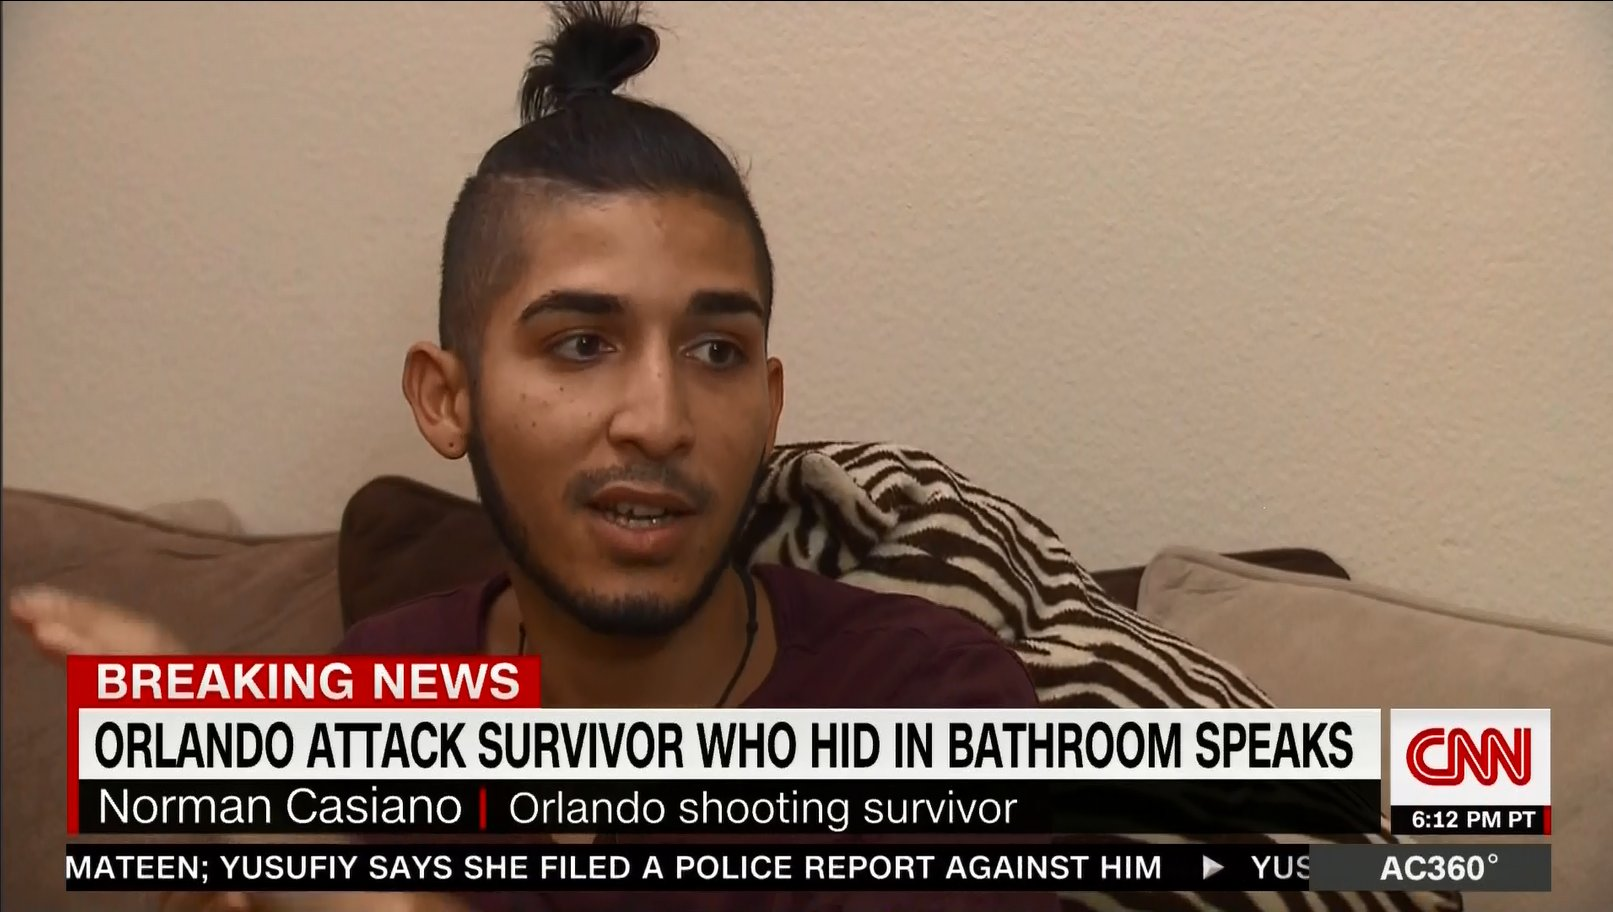 Norman Casiano speaks with Anderson Cooper on CNN